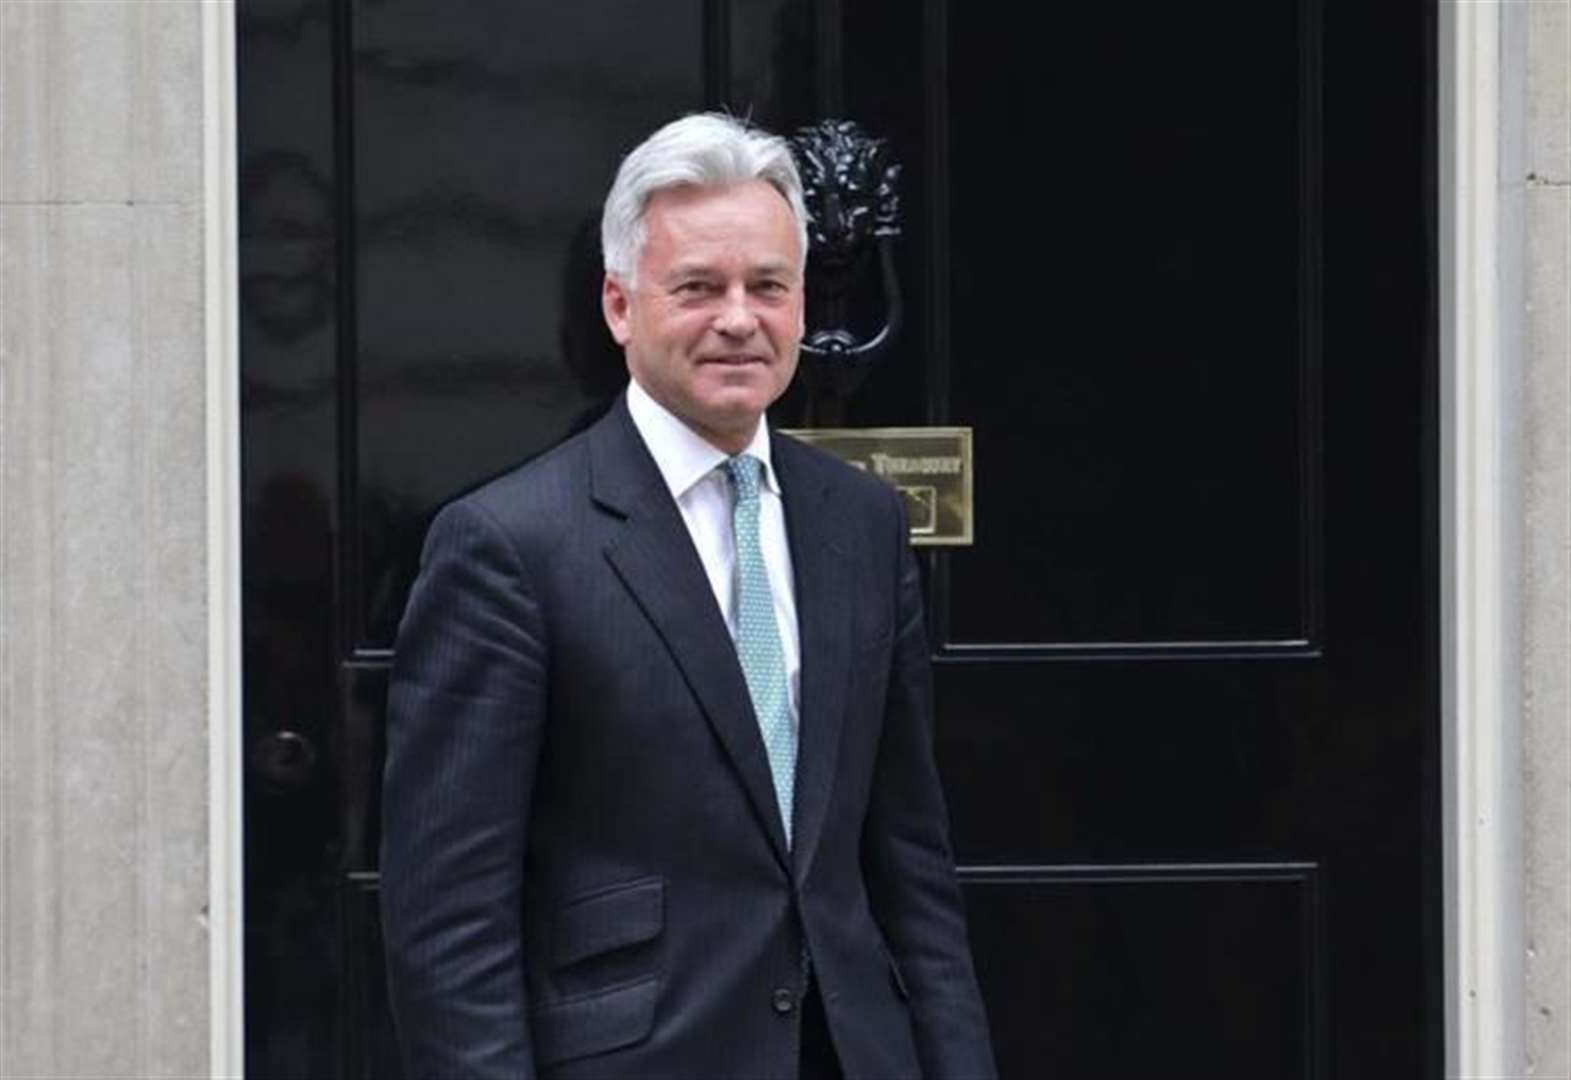 Rutland MP Sir Alan Duncan to stand down